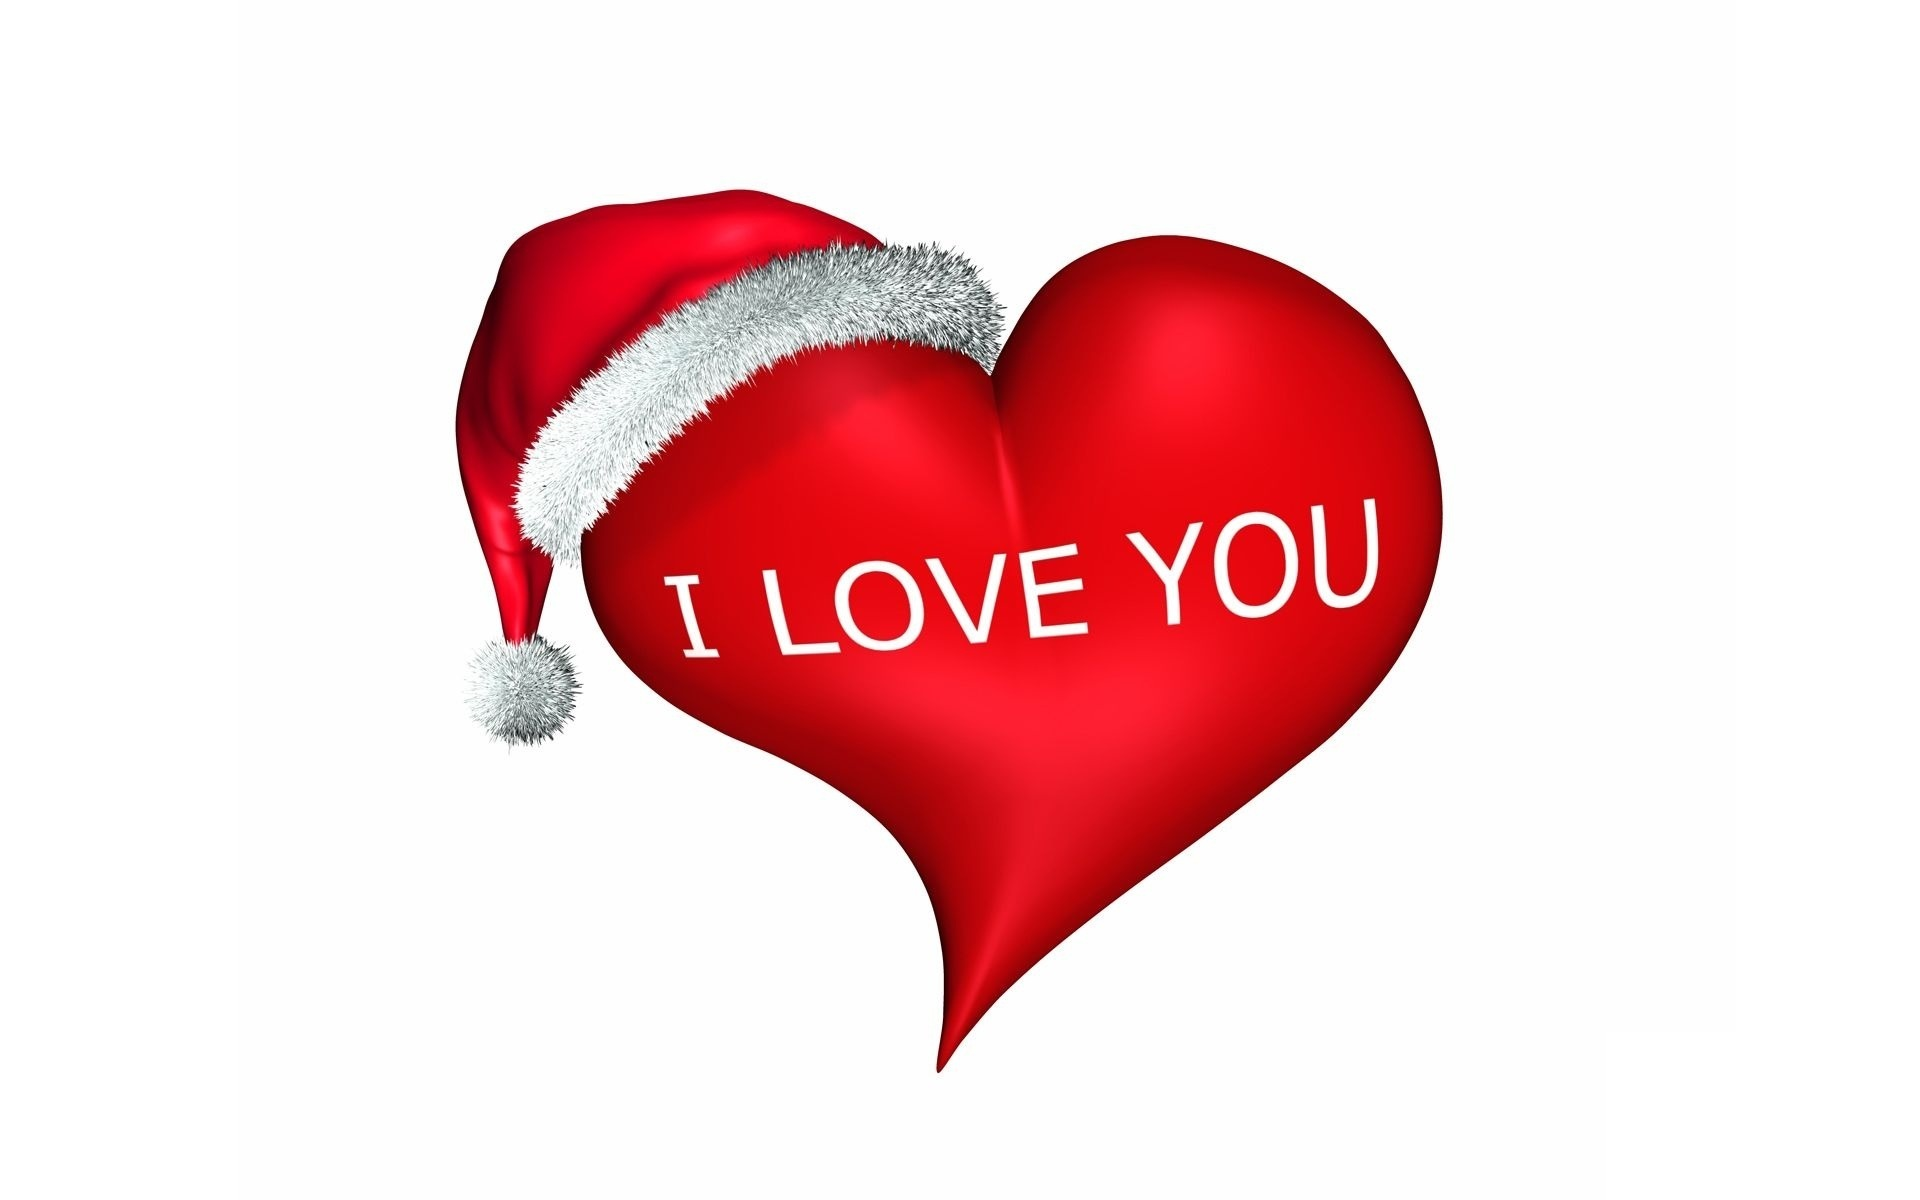 Photo Effects - m I love you photo effects